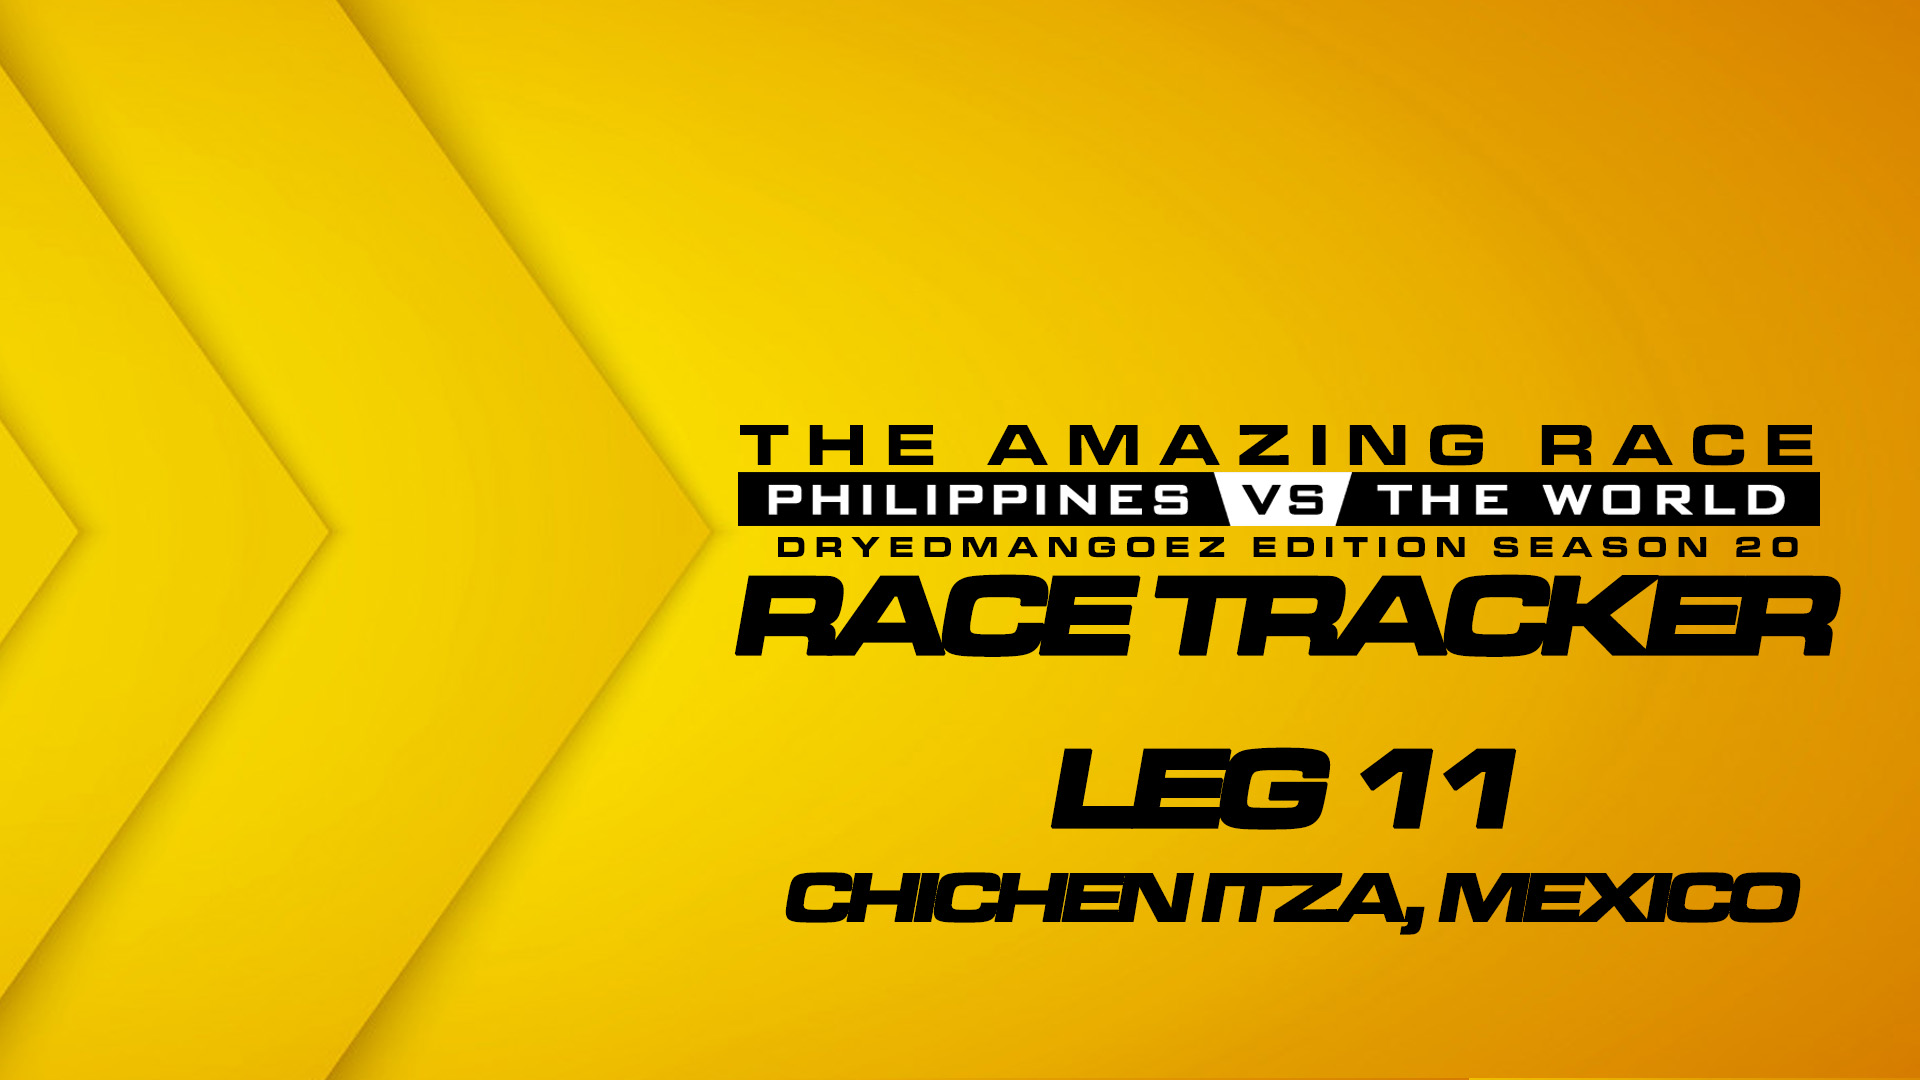 The Amazing Race Philippines vs The World (DryedMangoez Edition Season 20) Race Tracker – Leg 11